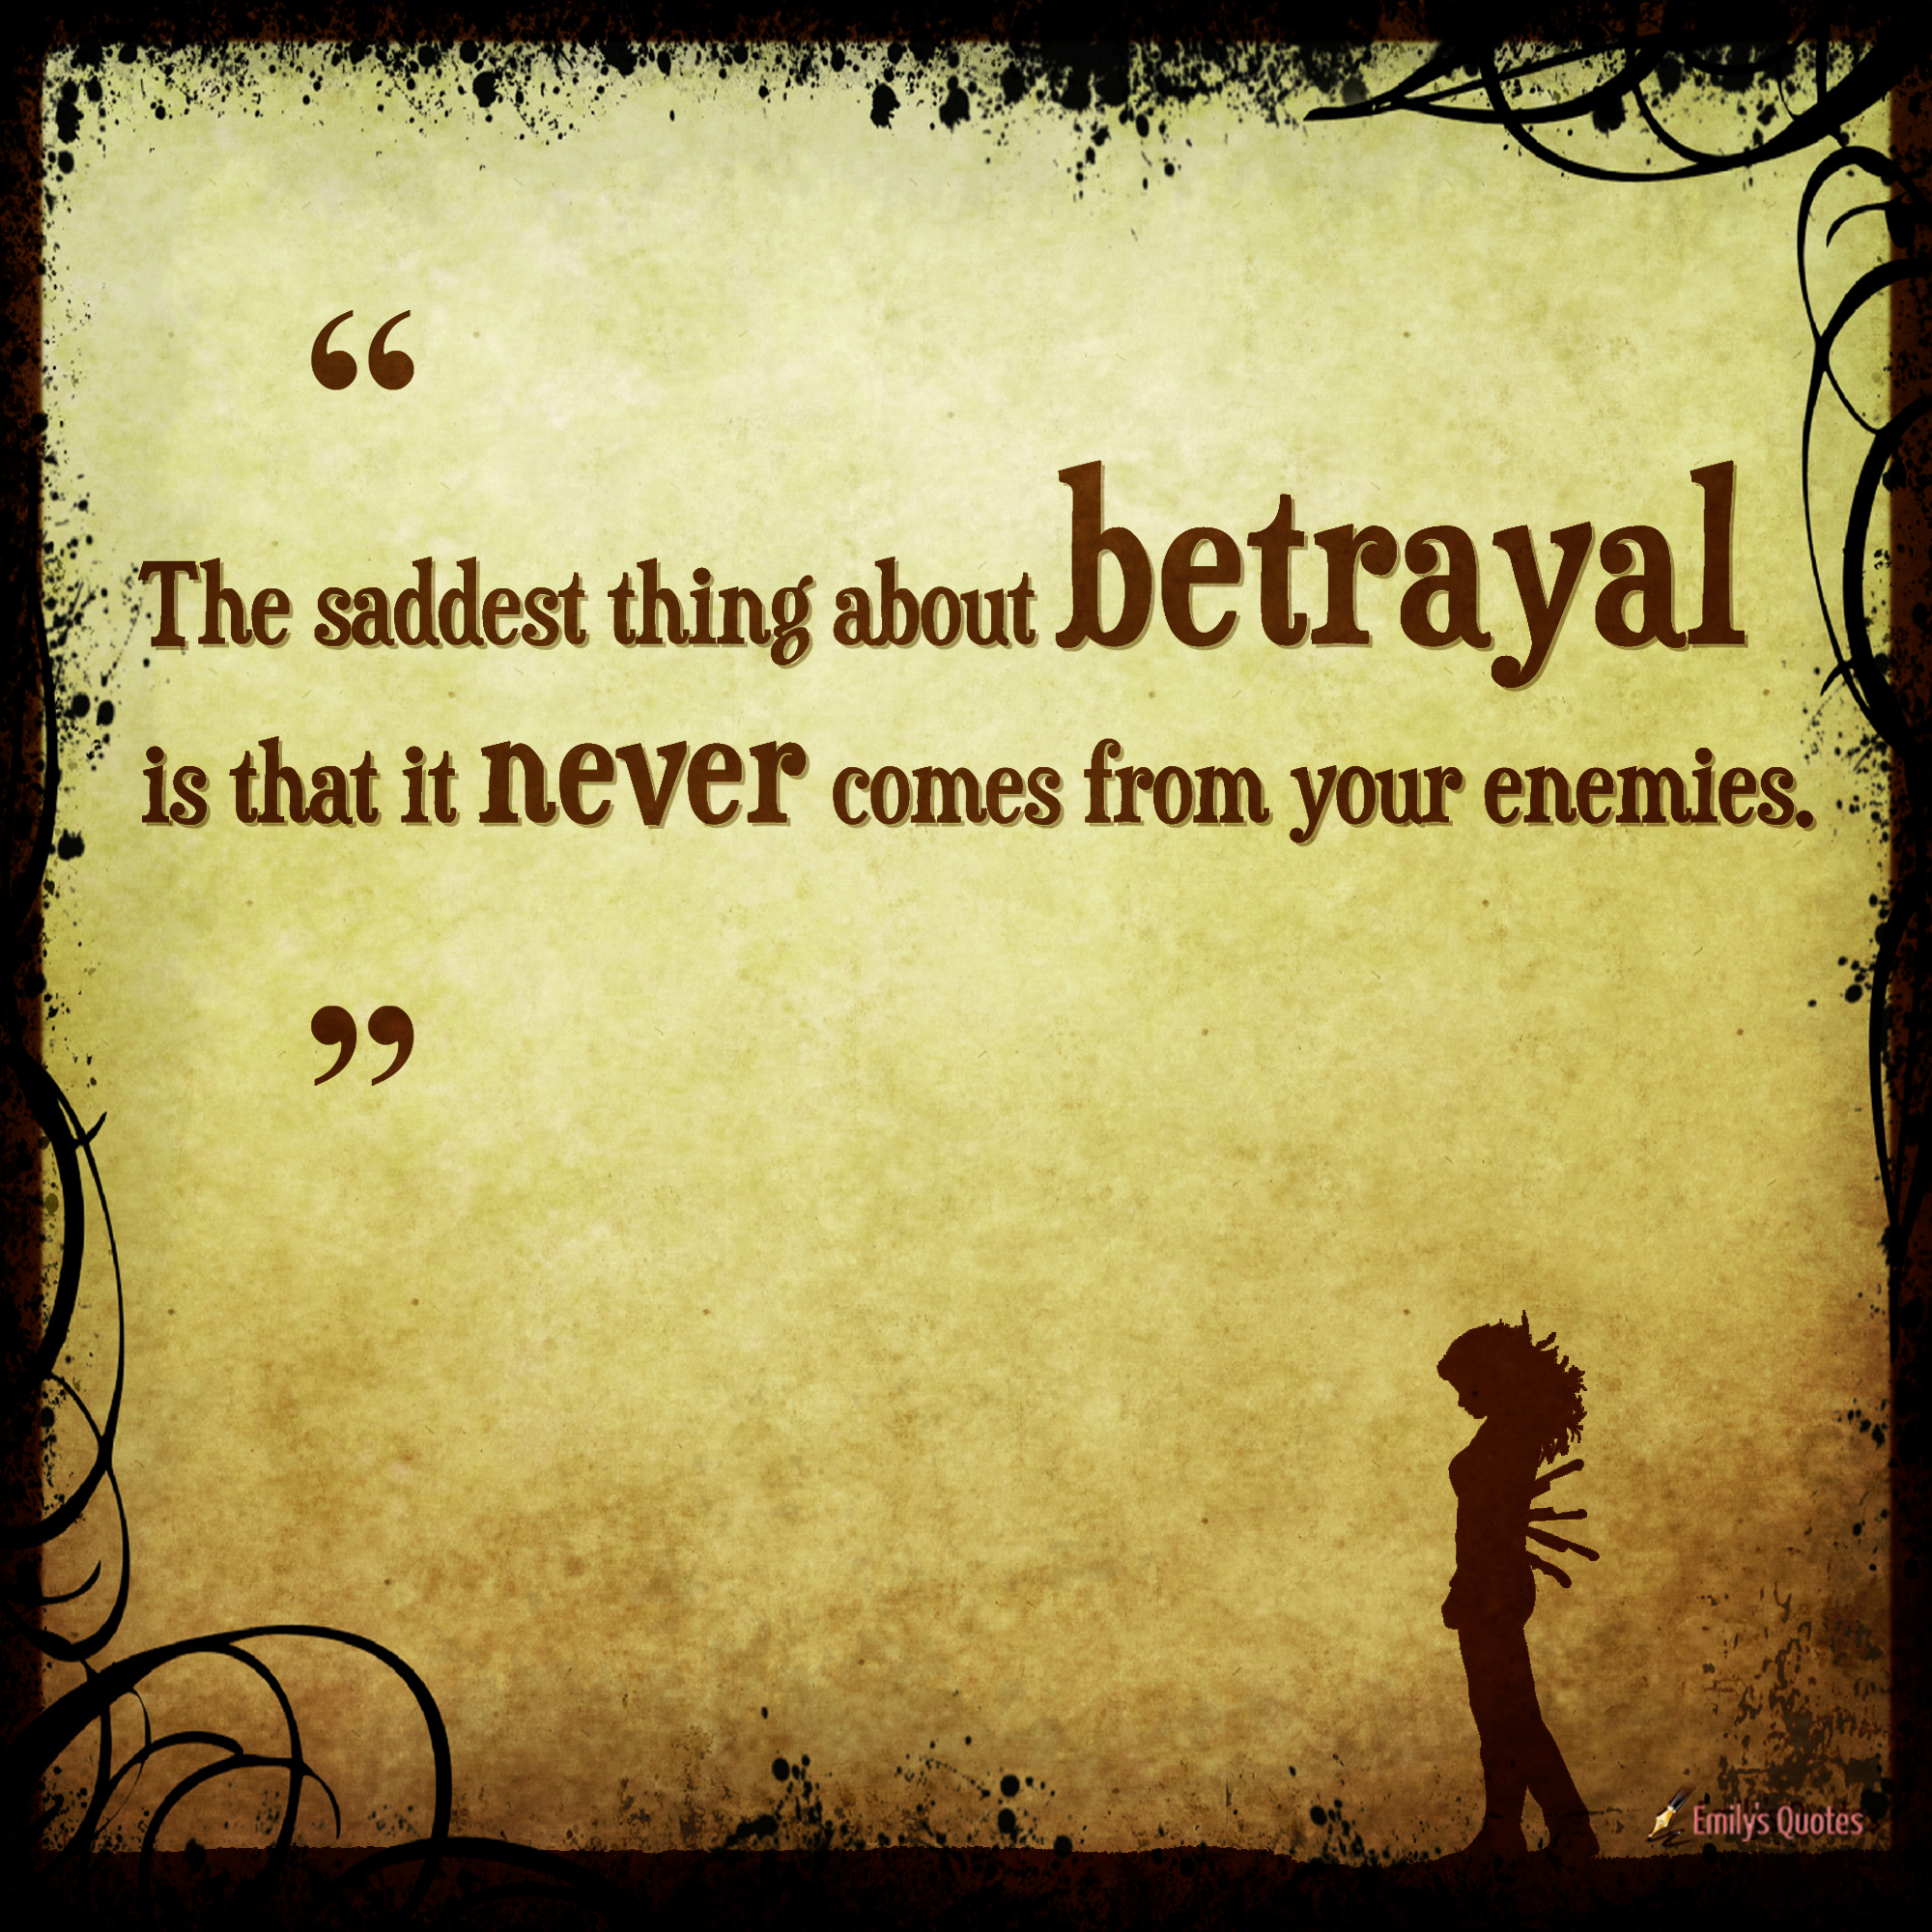 The saddest thing about betrayal is that it never comes